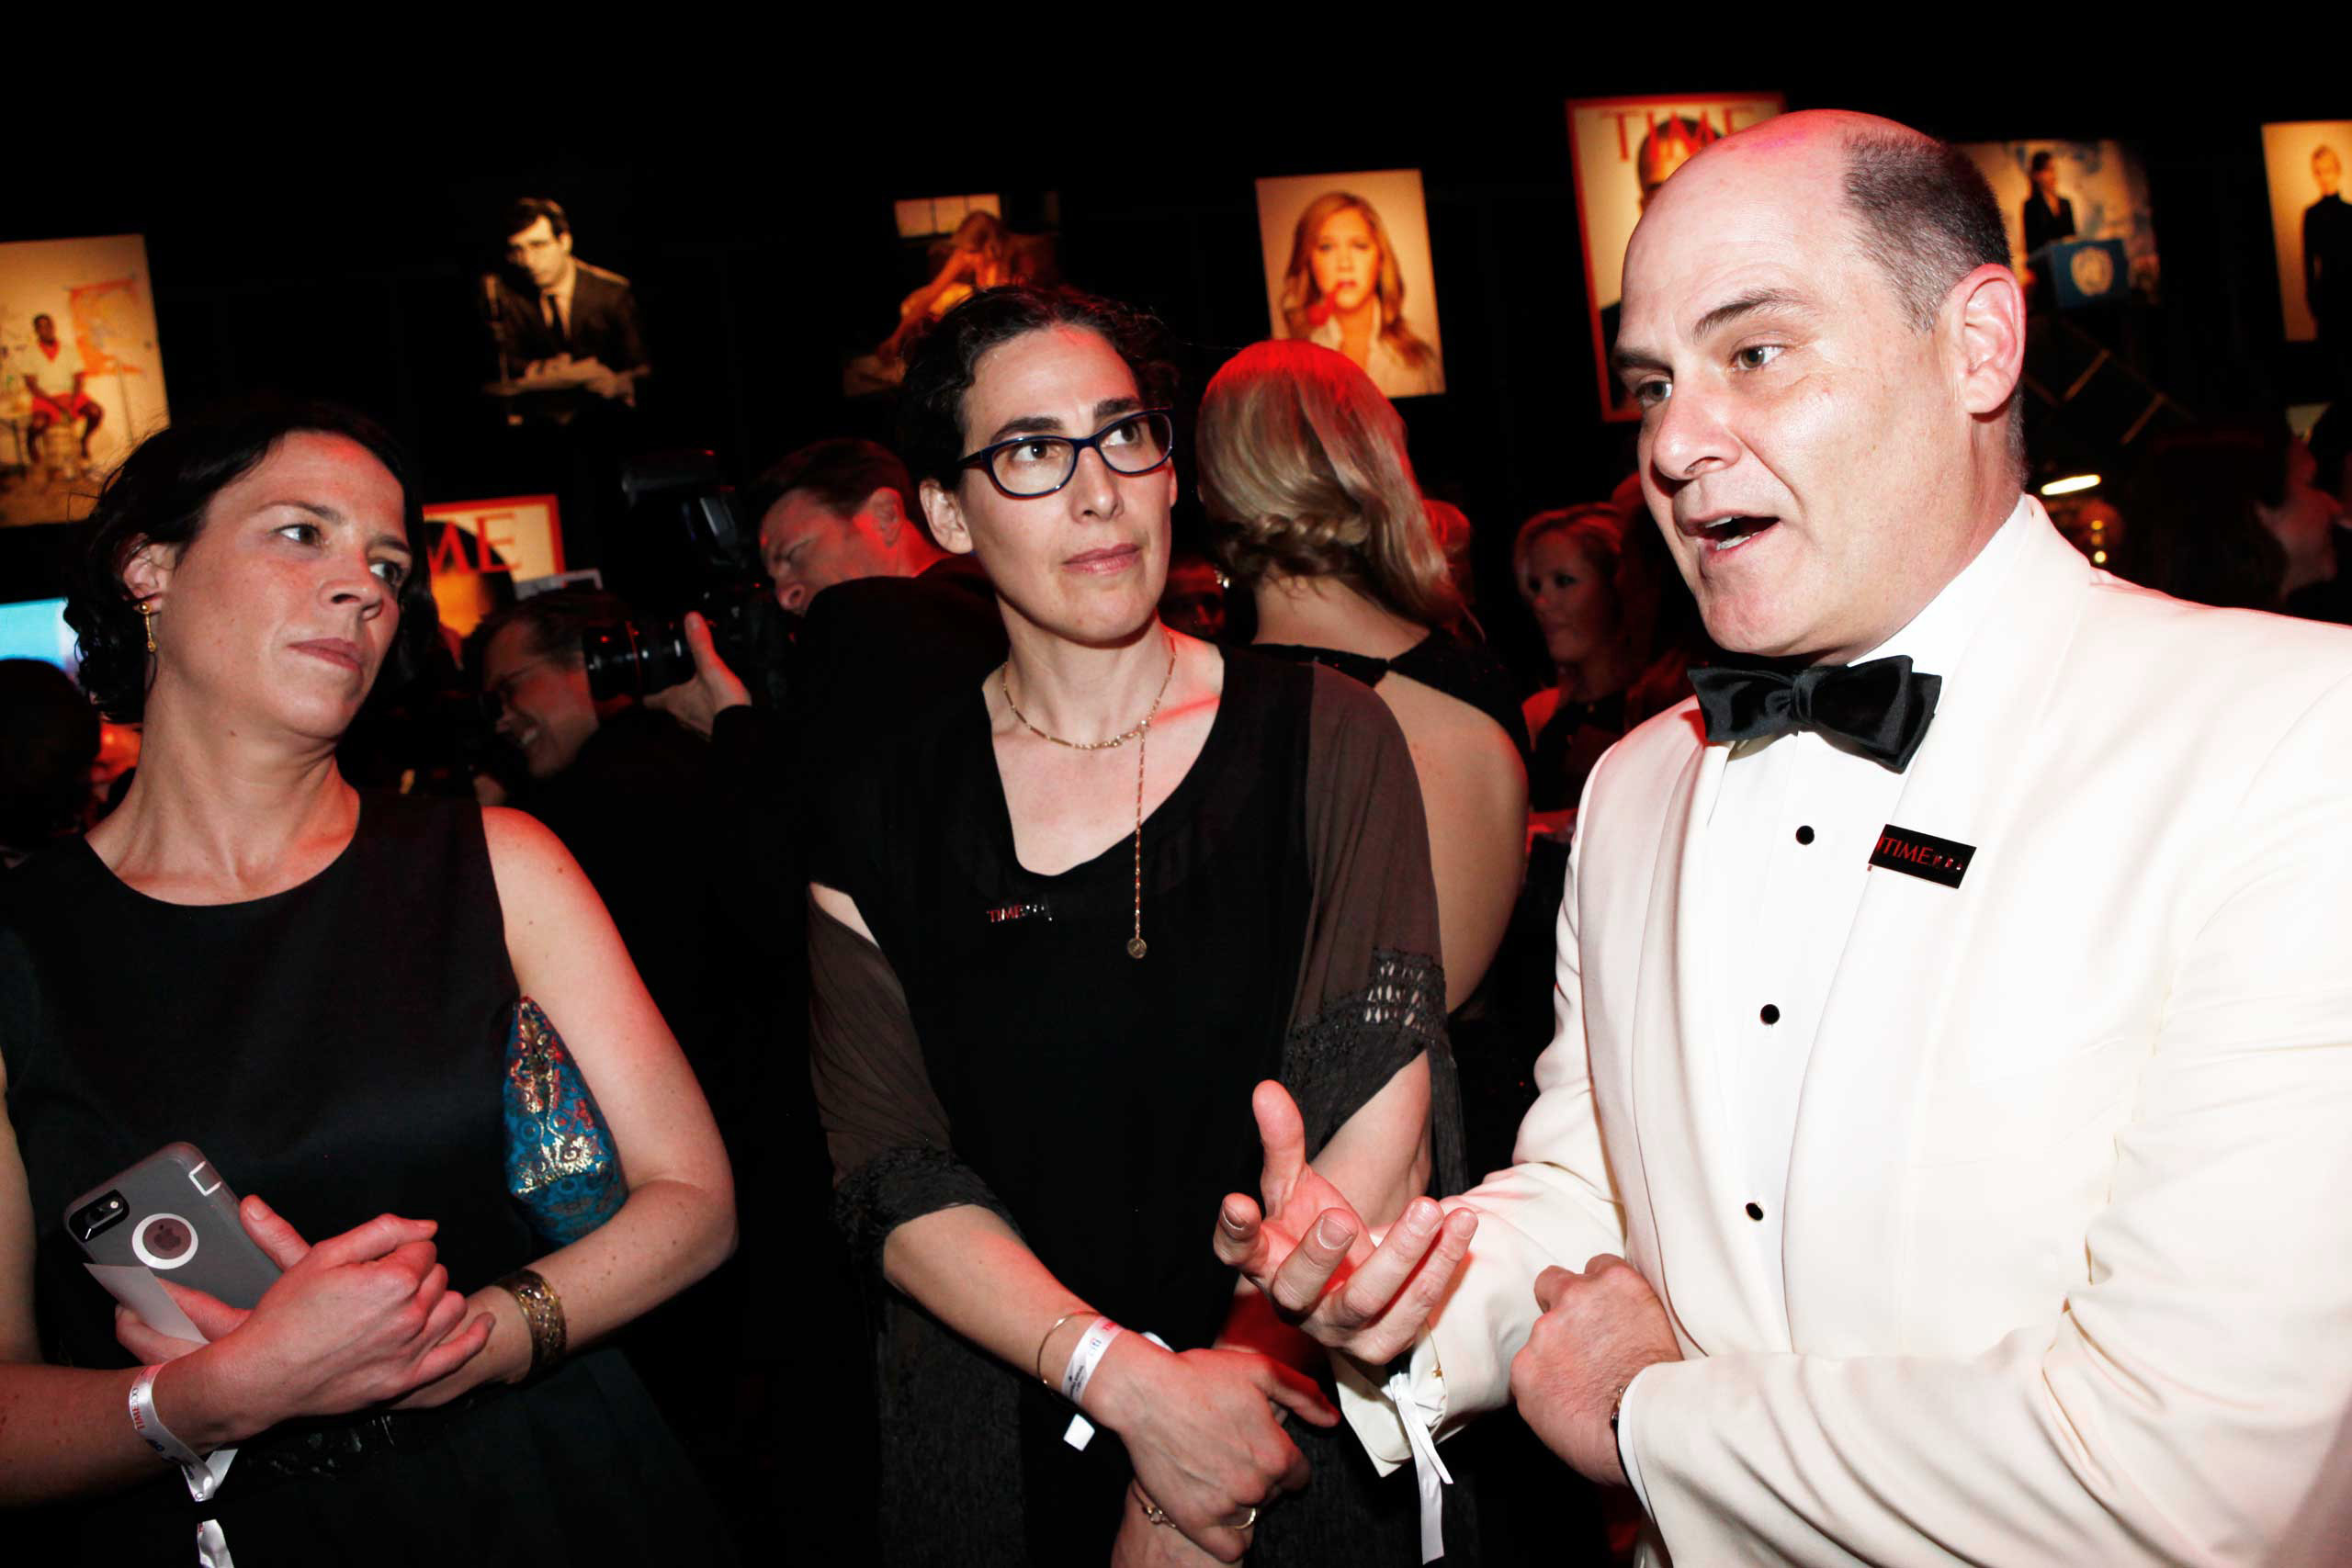 Julie Snyder, Sarah Koenig and Matthew Weiner attend the TIME 100 Gala at Lincoln Center in New York, NY, on Apr. 21, 2015.